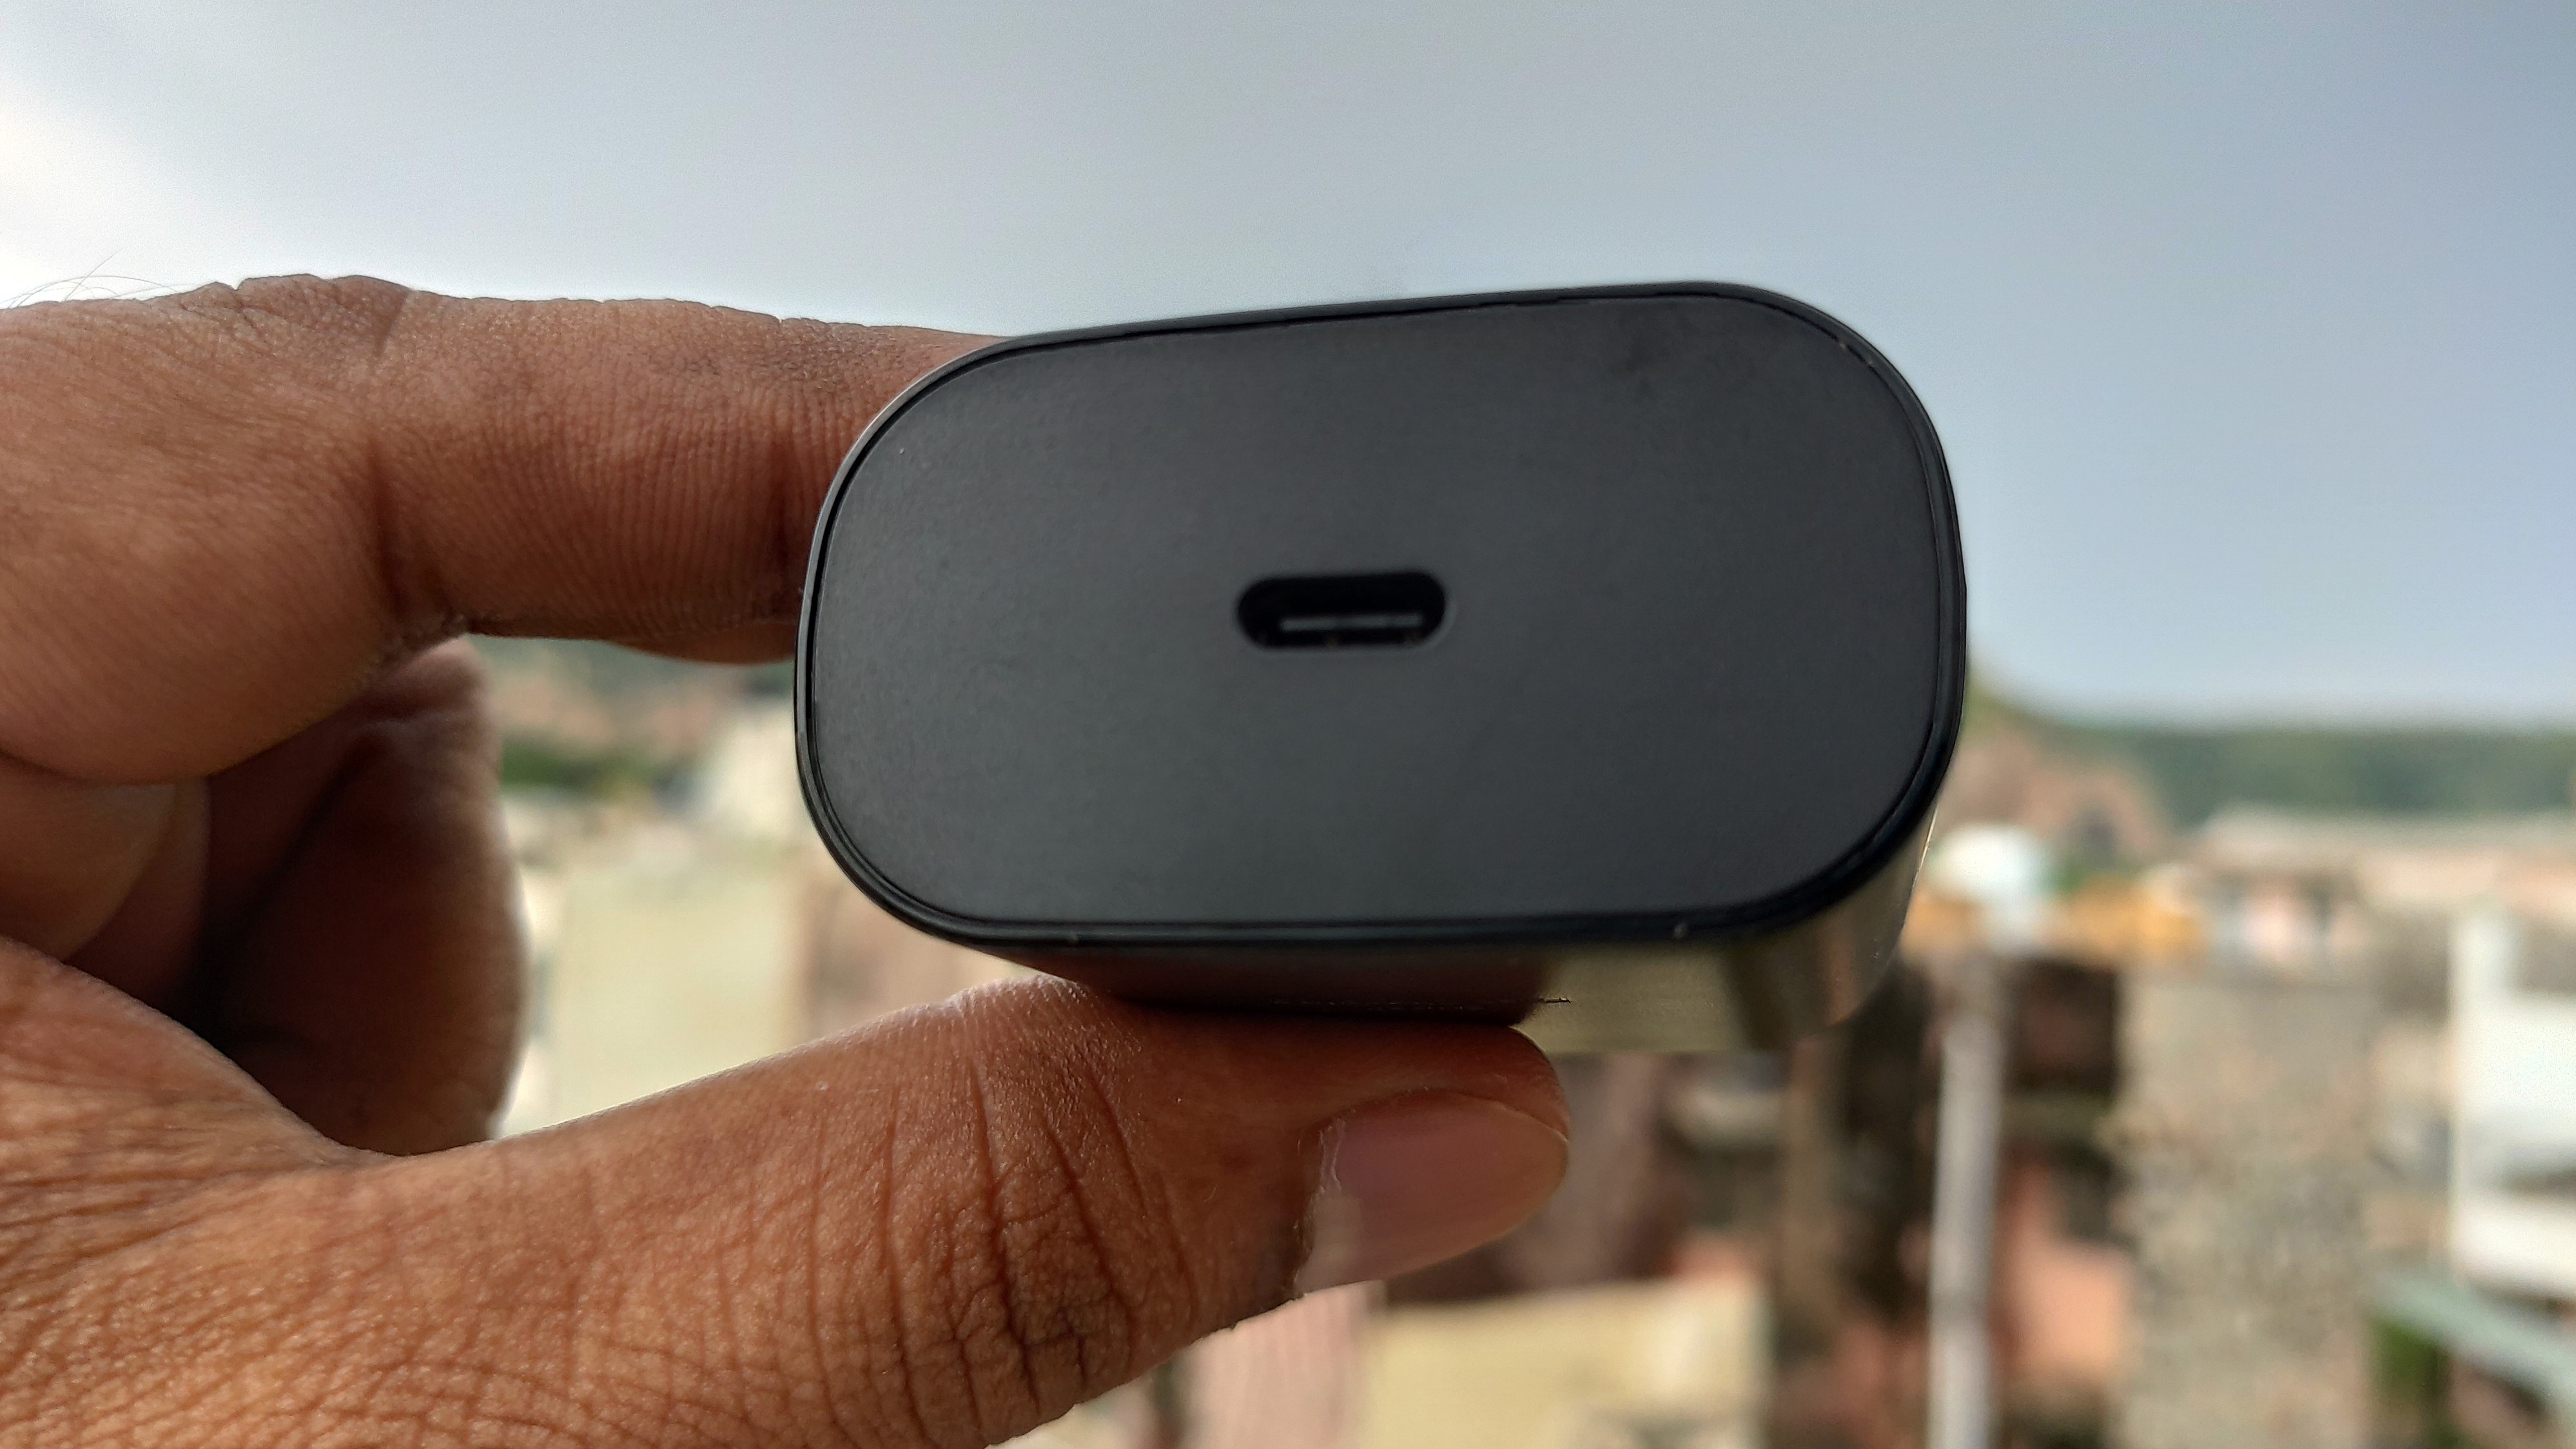 A charger for the Samsung Galaxy M31s